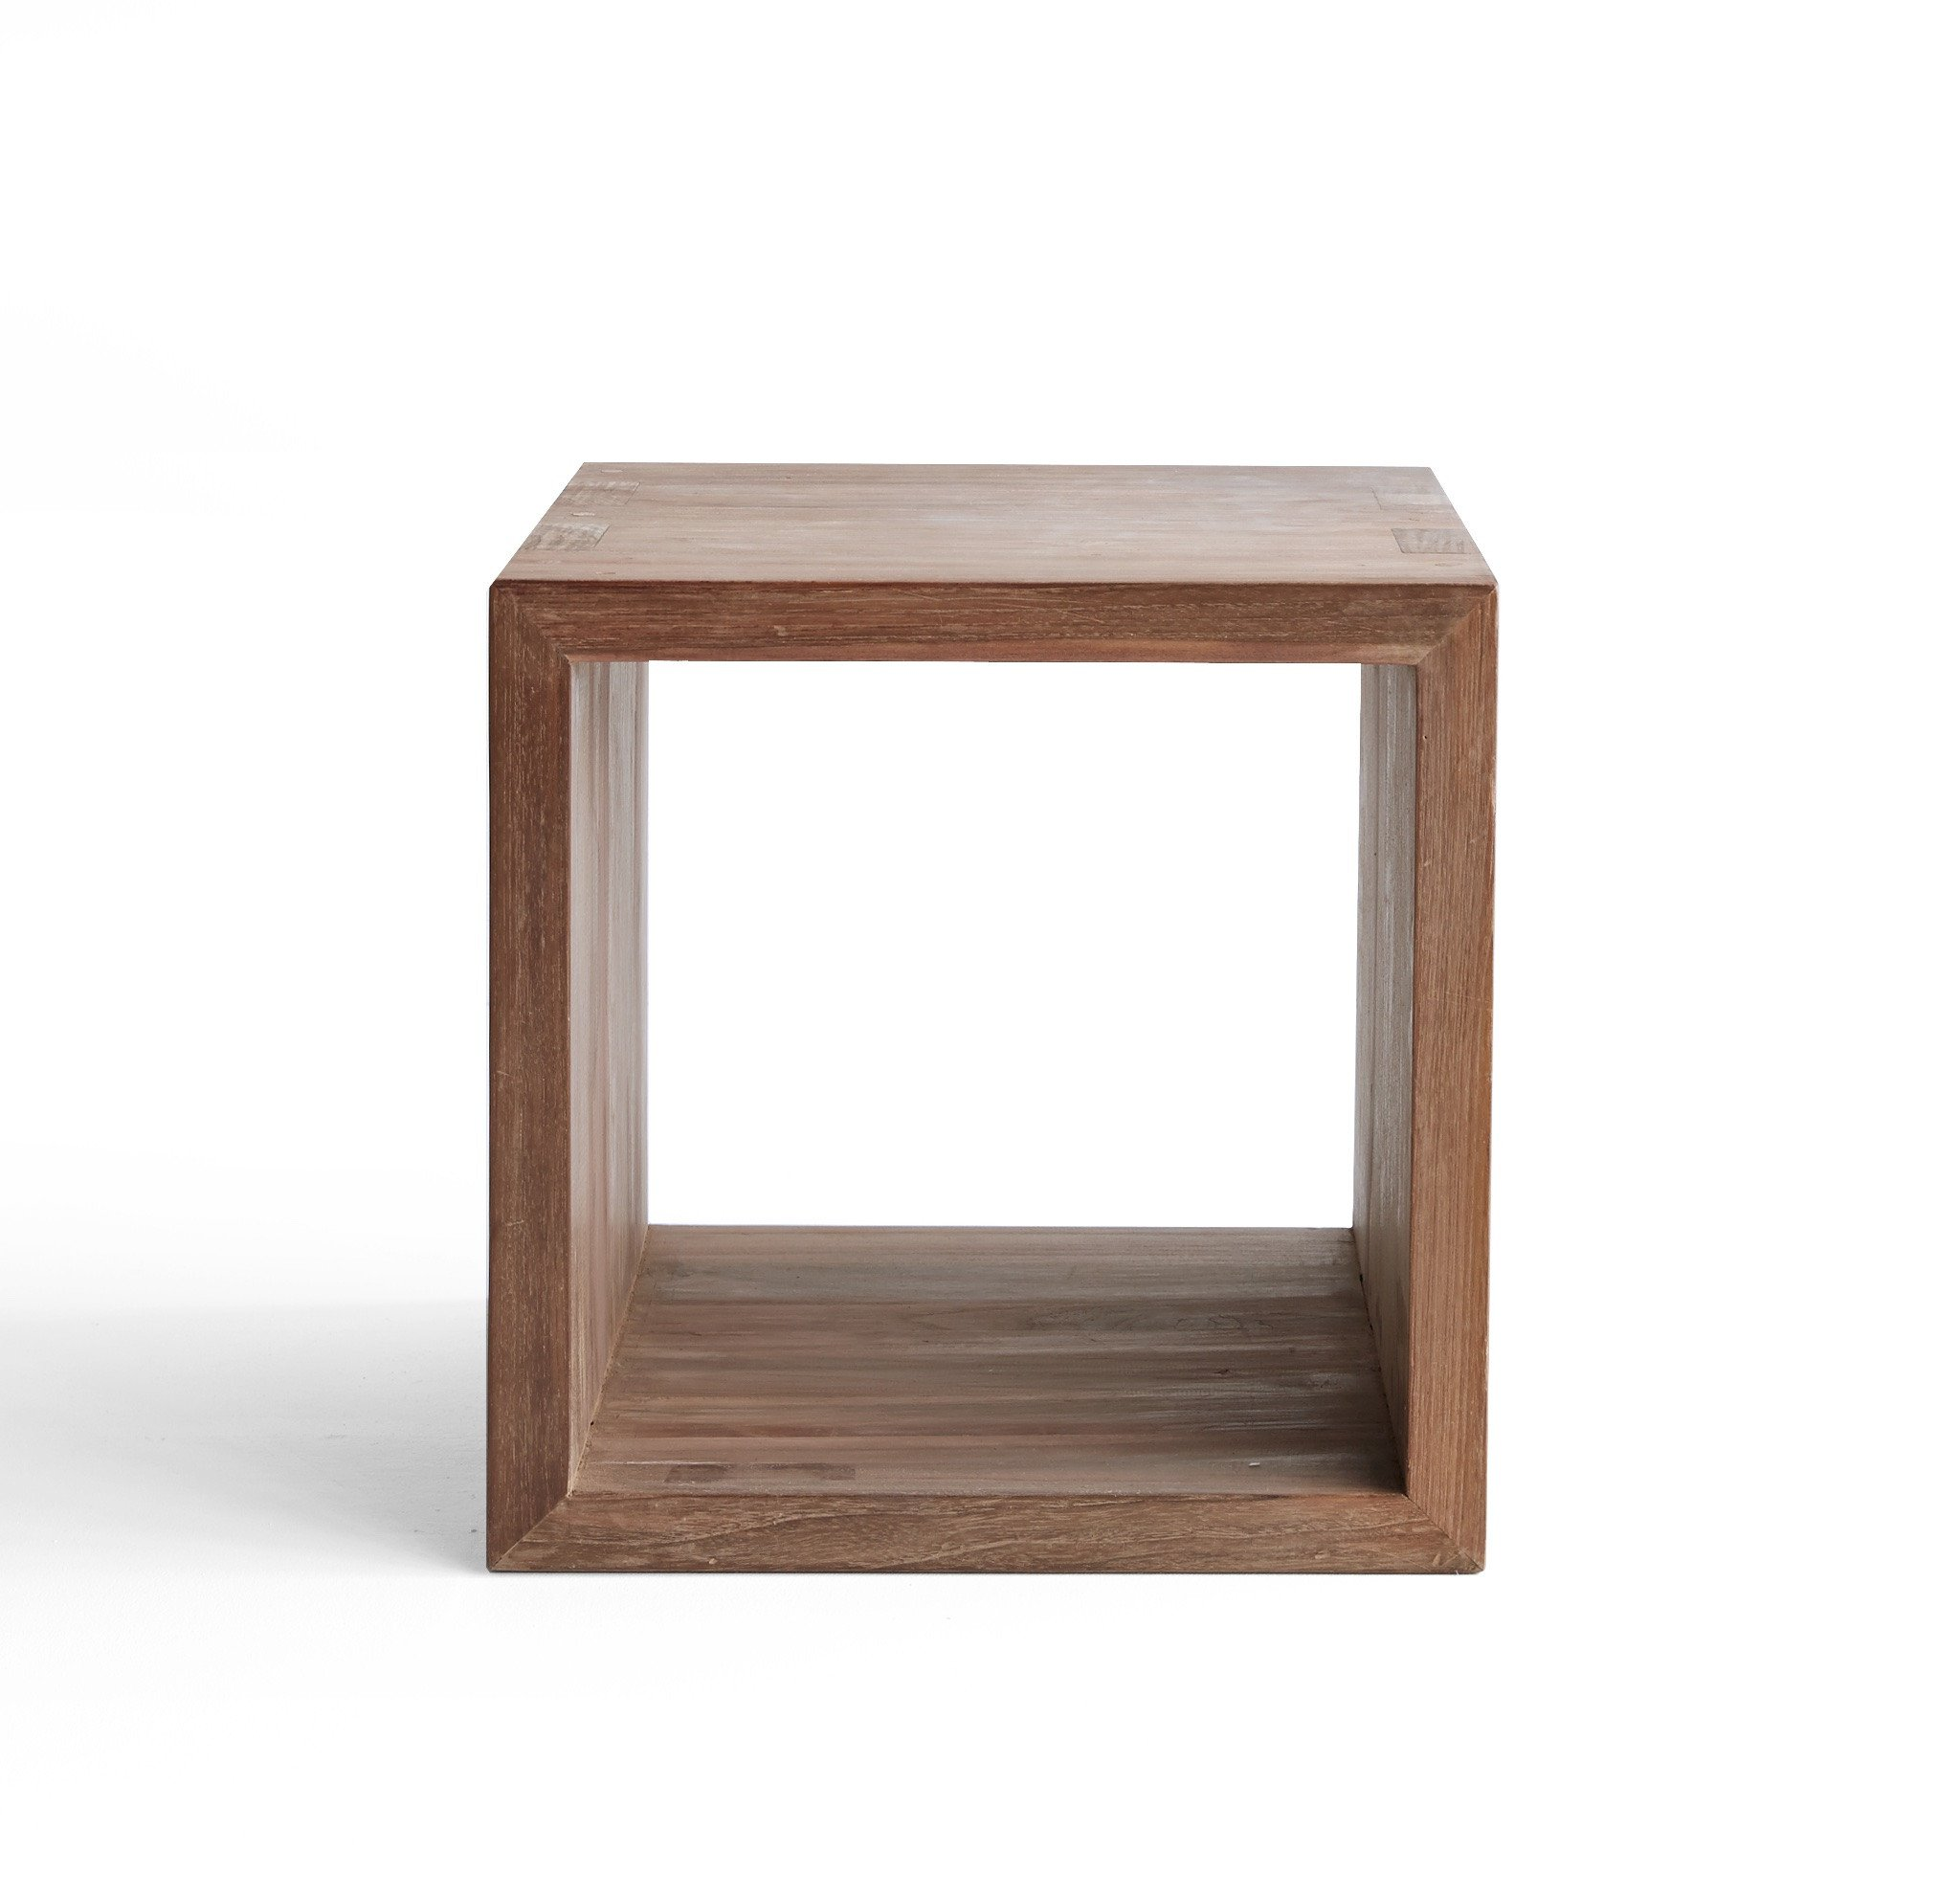 side tables living room furniture originals closed cube table wood accent kubus teak sidetable ethnicraft piece set narrow oak console silver mirrored bedside concrete garden grey